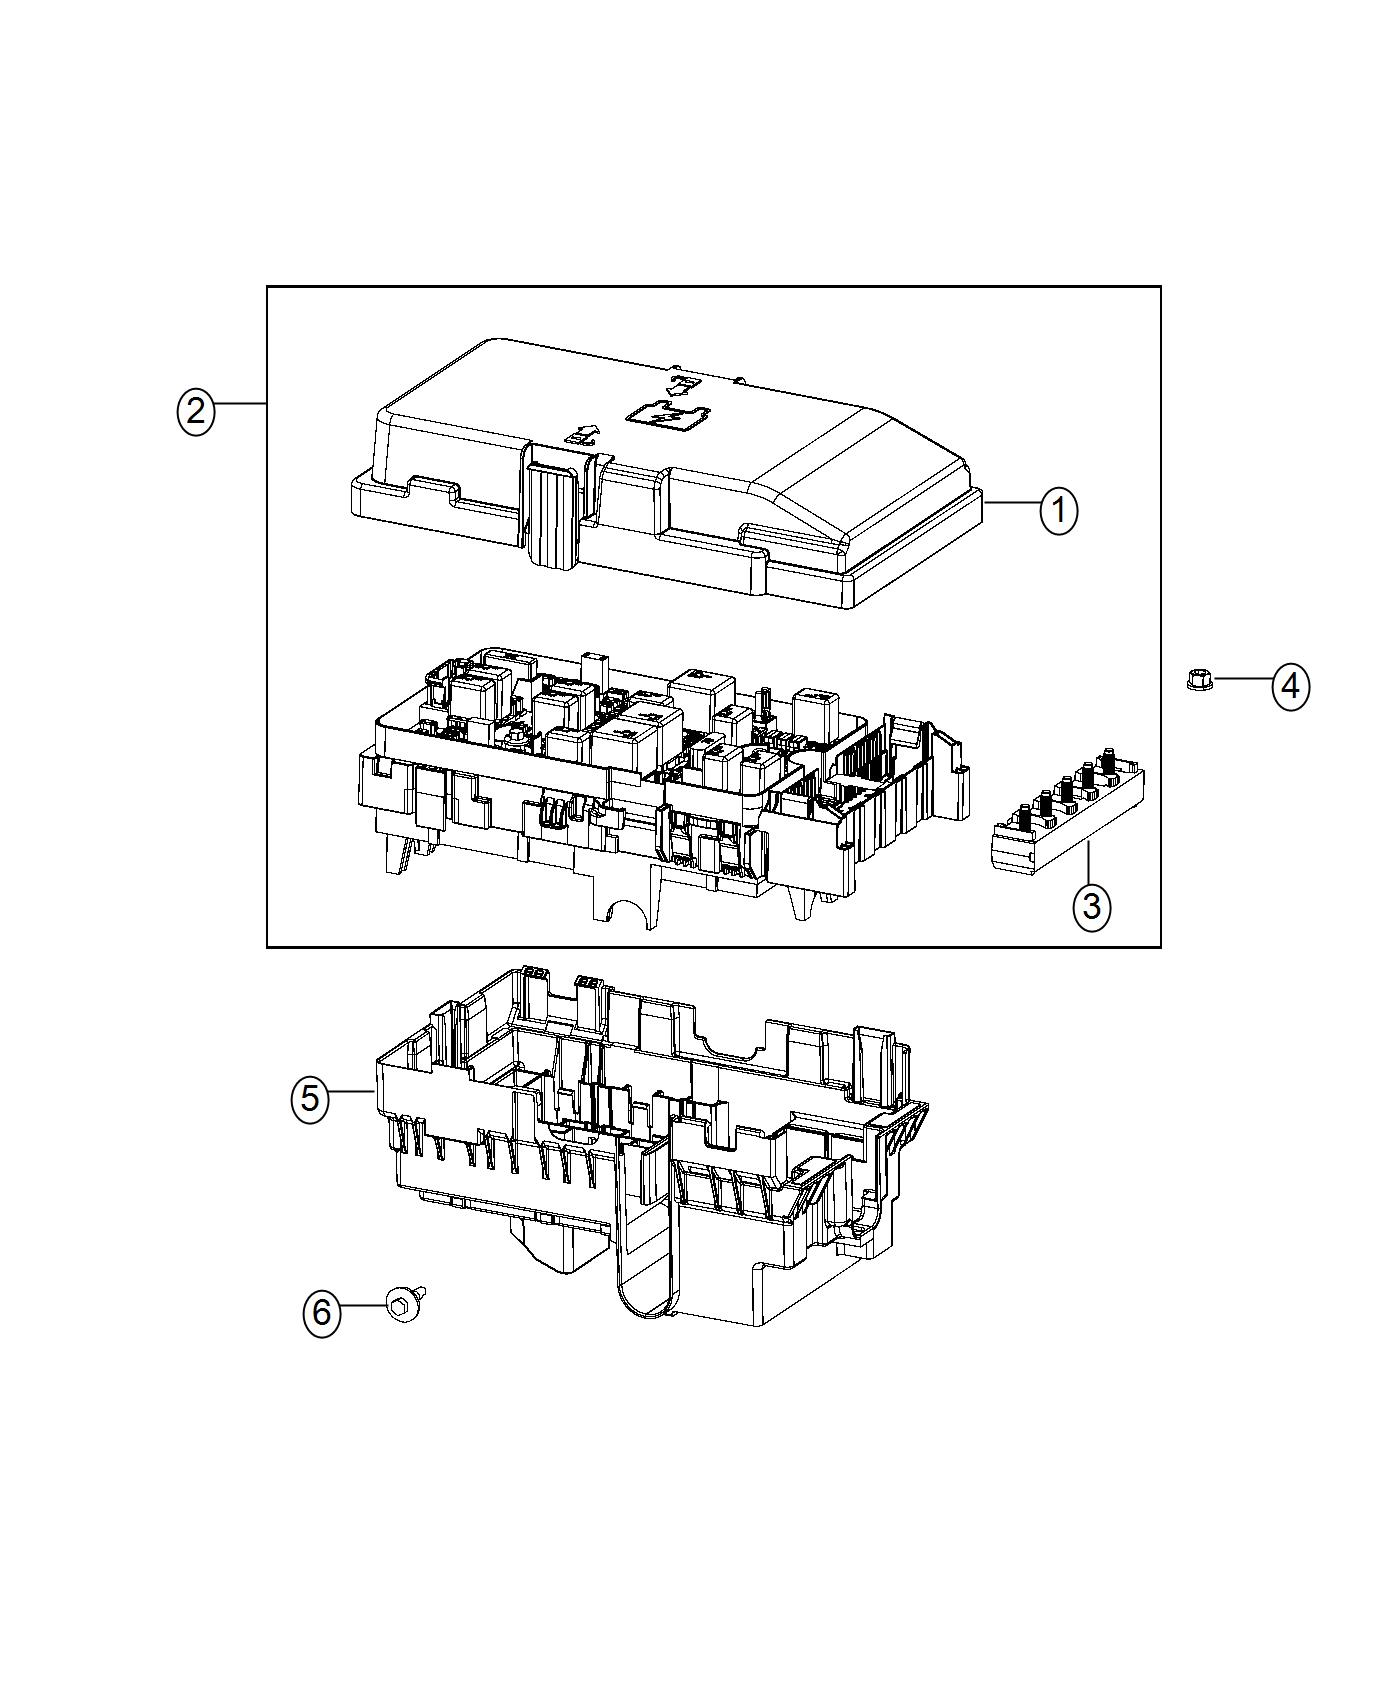 Chrysler 200 Fuse. Micro. 15 amp. Export, us, canada